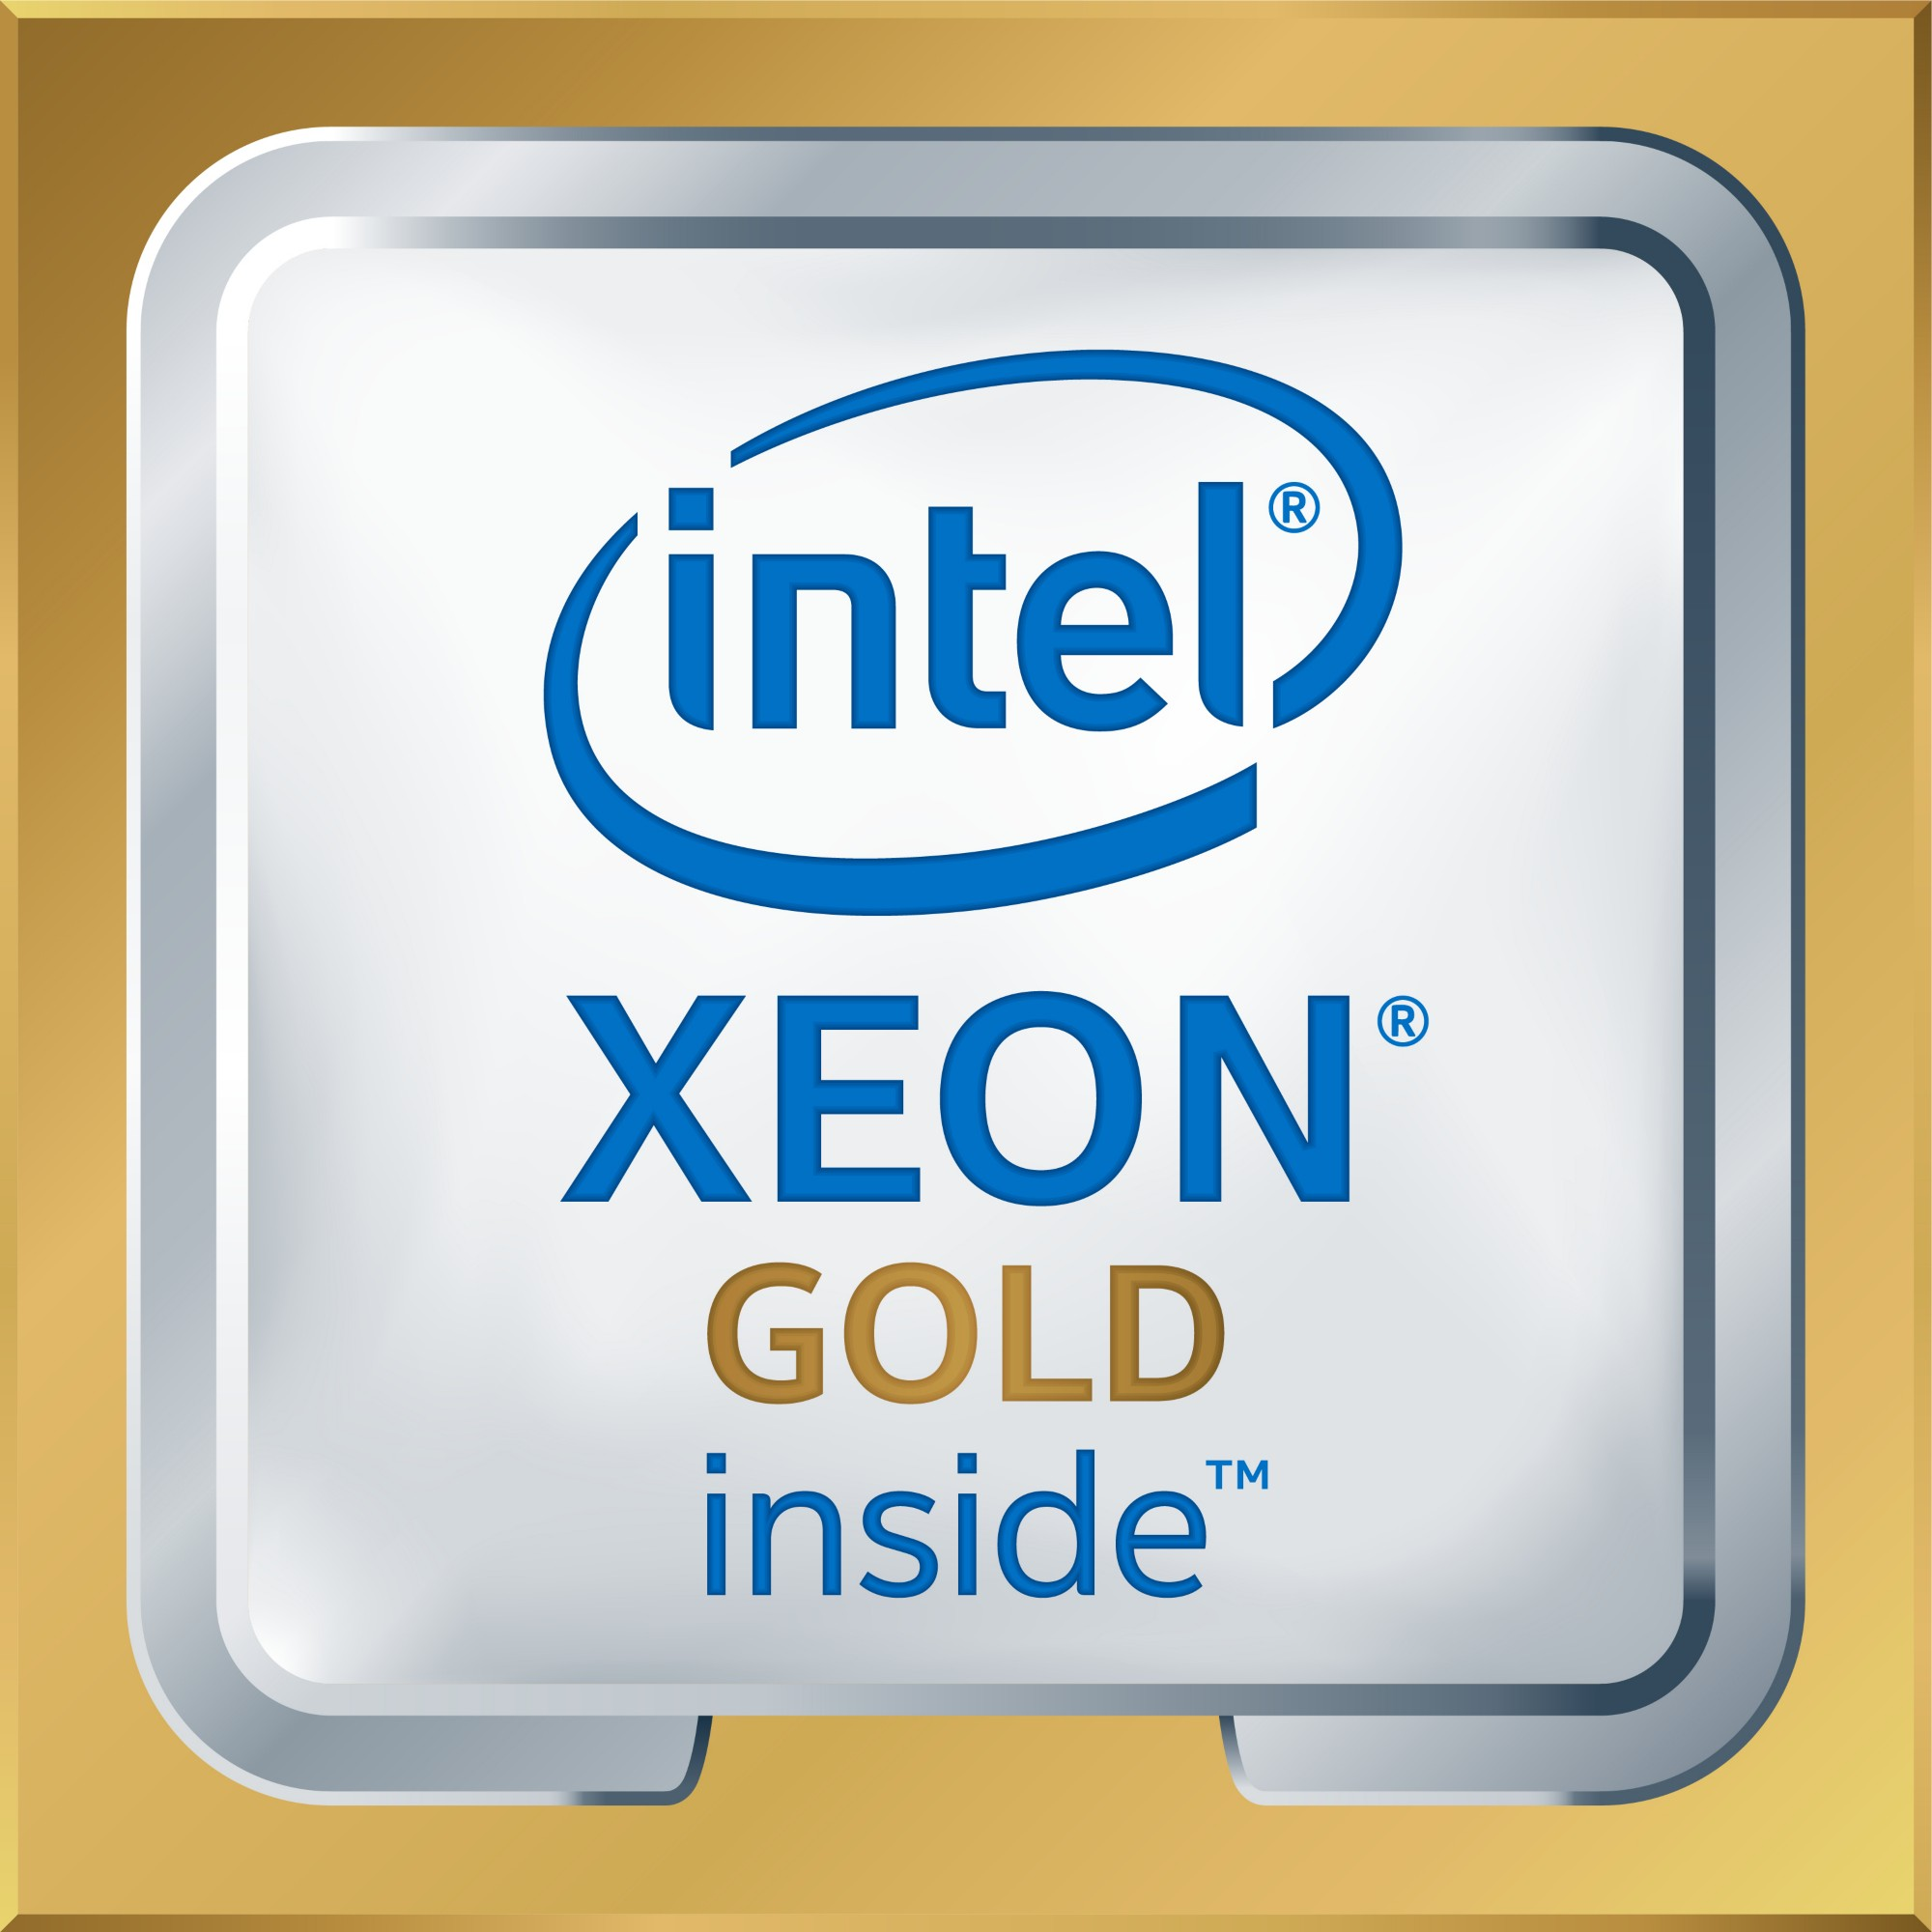 INTEL CD8067303330302 XEON GOLD 6134 PROCESSOR (24.75M CACHE, 3.20 GHZ) 3.20GHZ 24.75MB L3